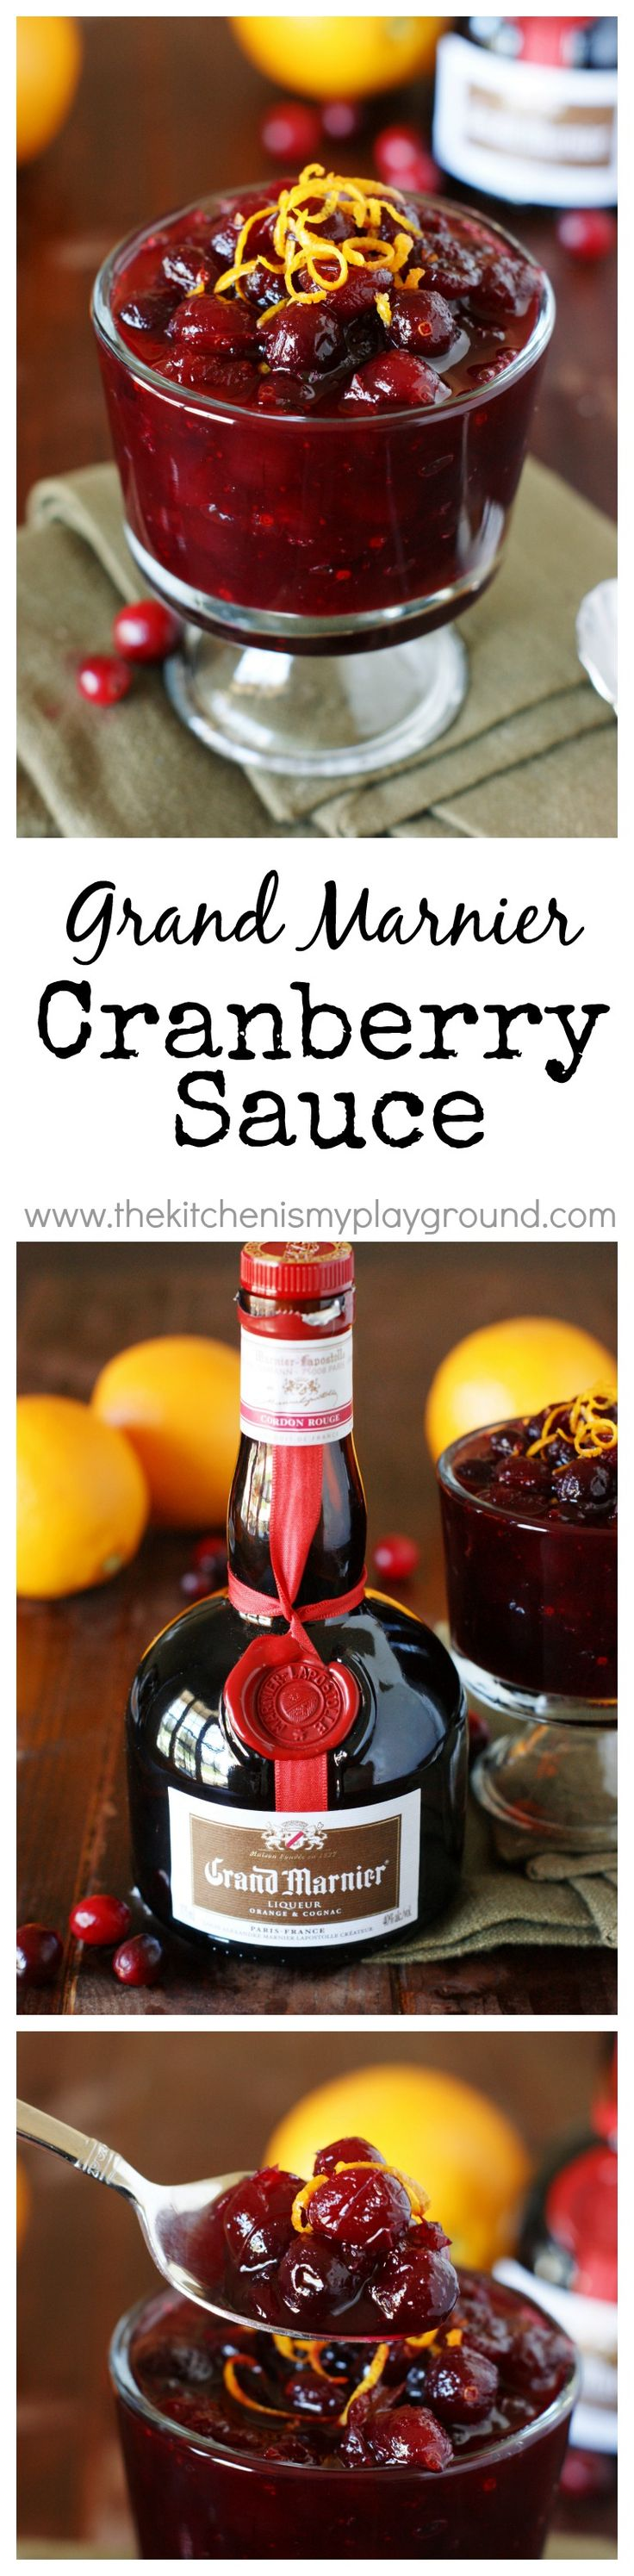 Grand Marnier Cranberry Sauce ~ a wonderfully-flavorful, nicely-balanced sauce that will be the perfect #cranberry accompaniment to your Thanksgiving or Christmas meal!  #cranberrysauce #Thanksgiving #Christmas www.thekitchenismyplayground.com